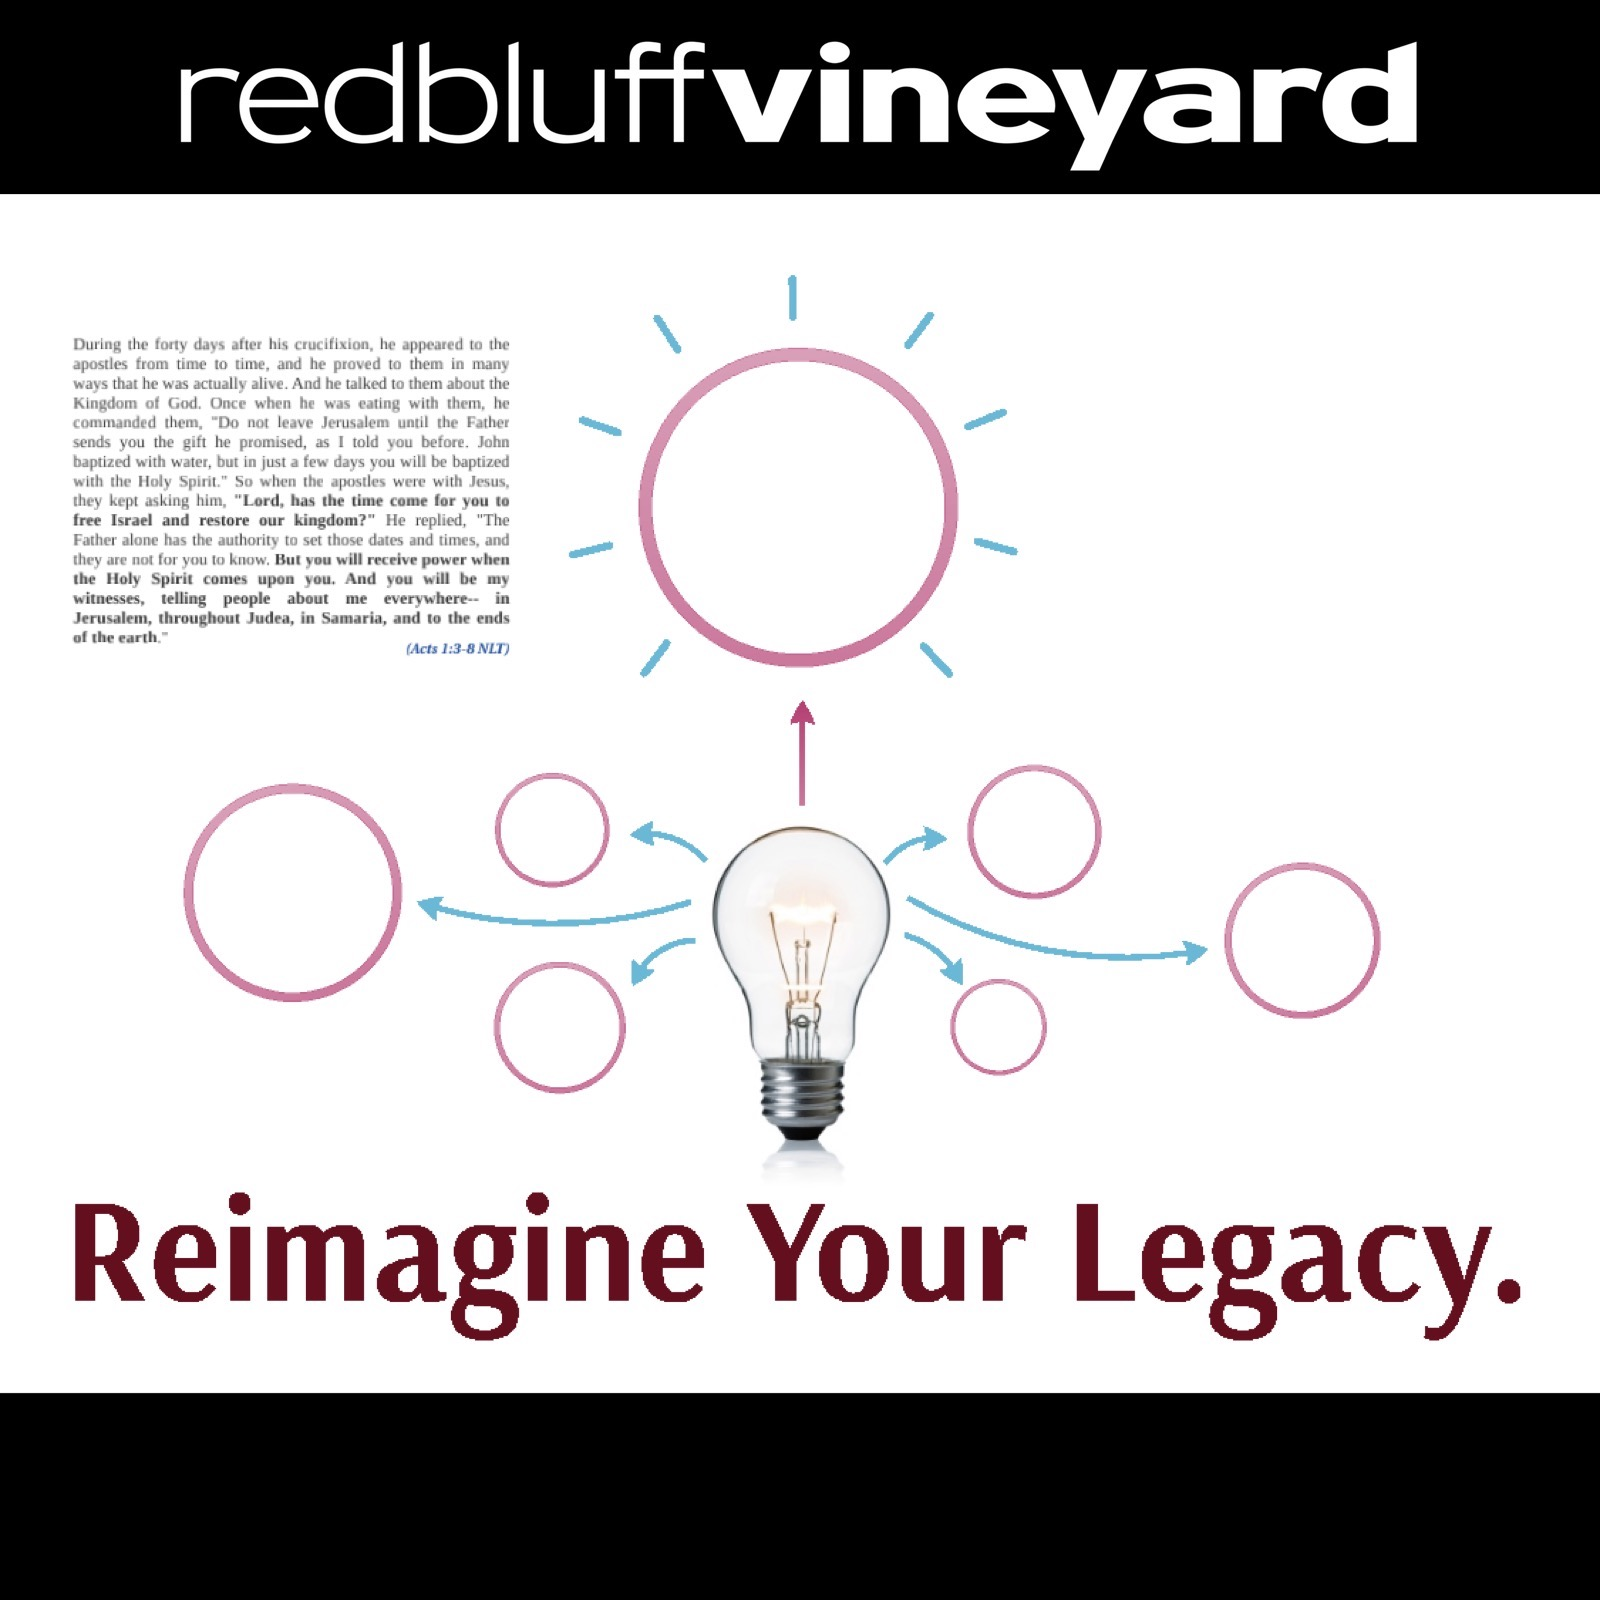 Reimagine Your Legacy